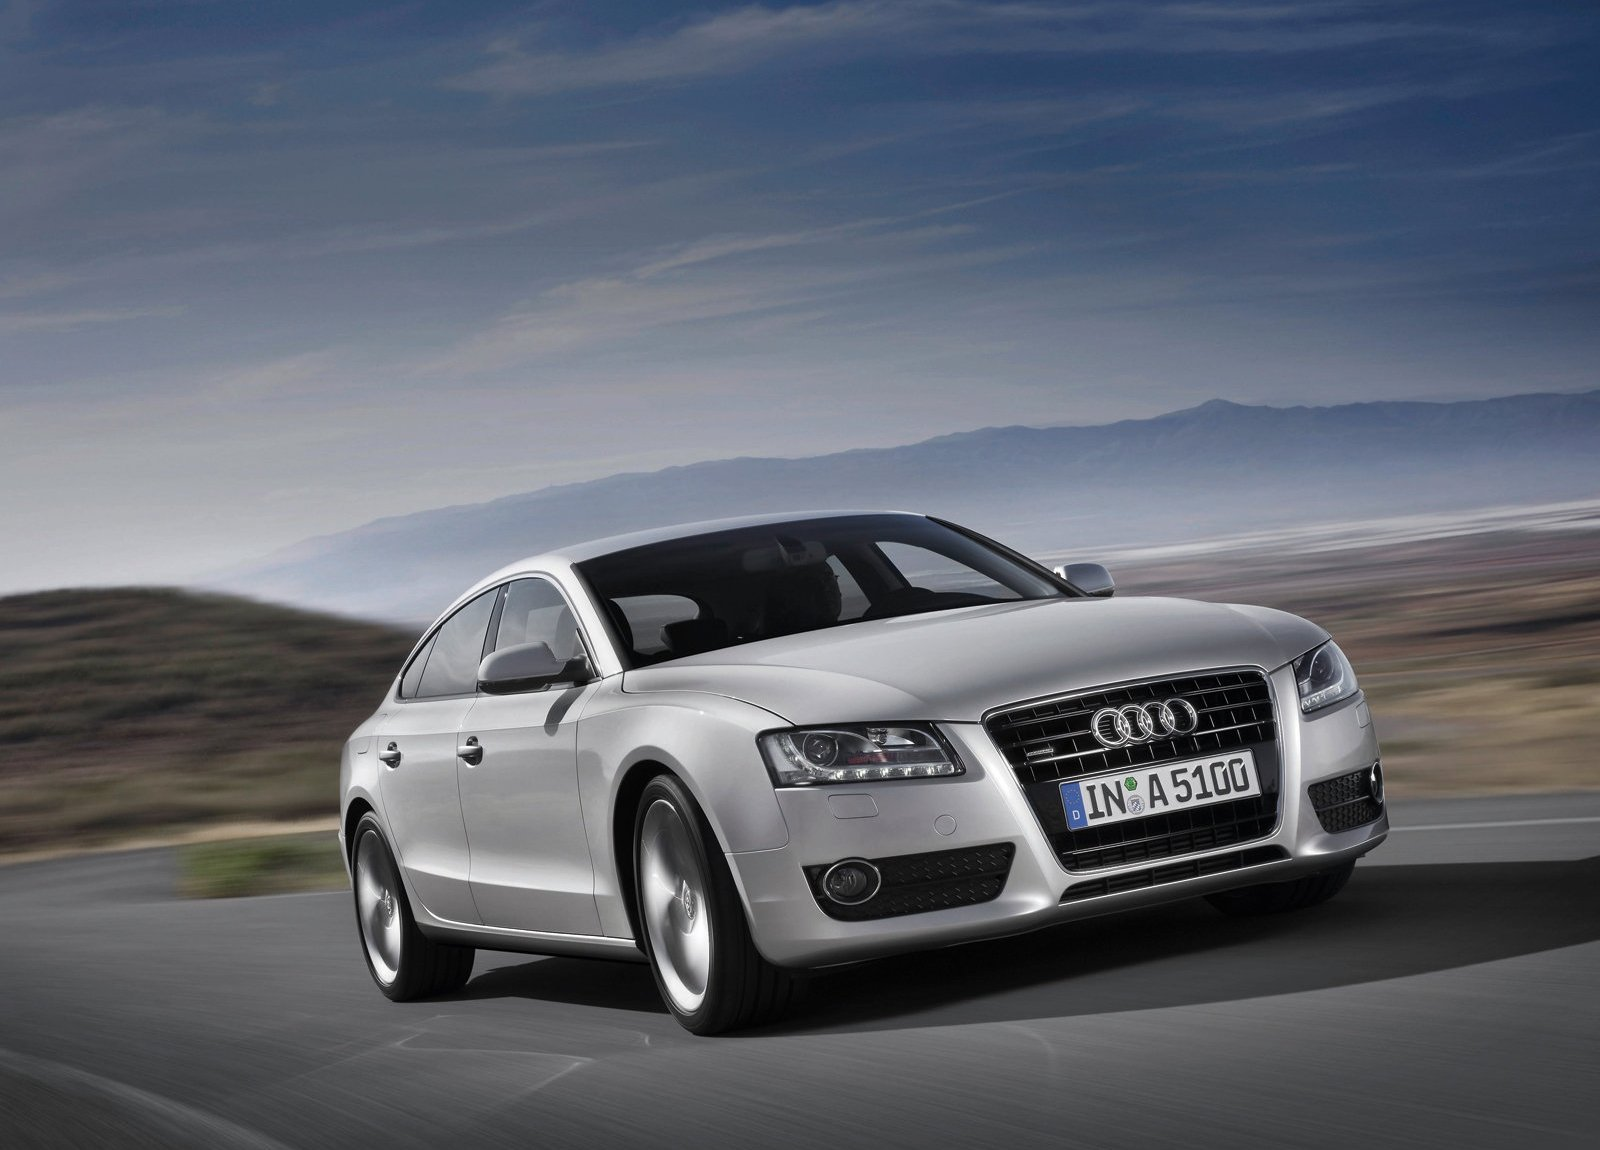 AUDI Super fast Cars High Resolution Wallpapers 1600x1150